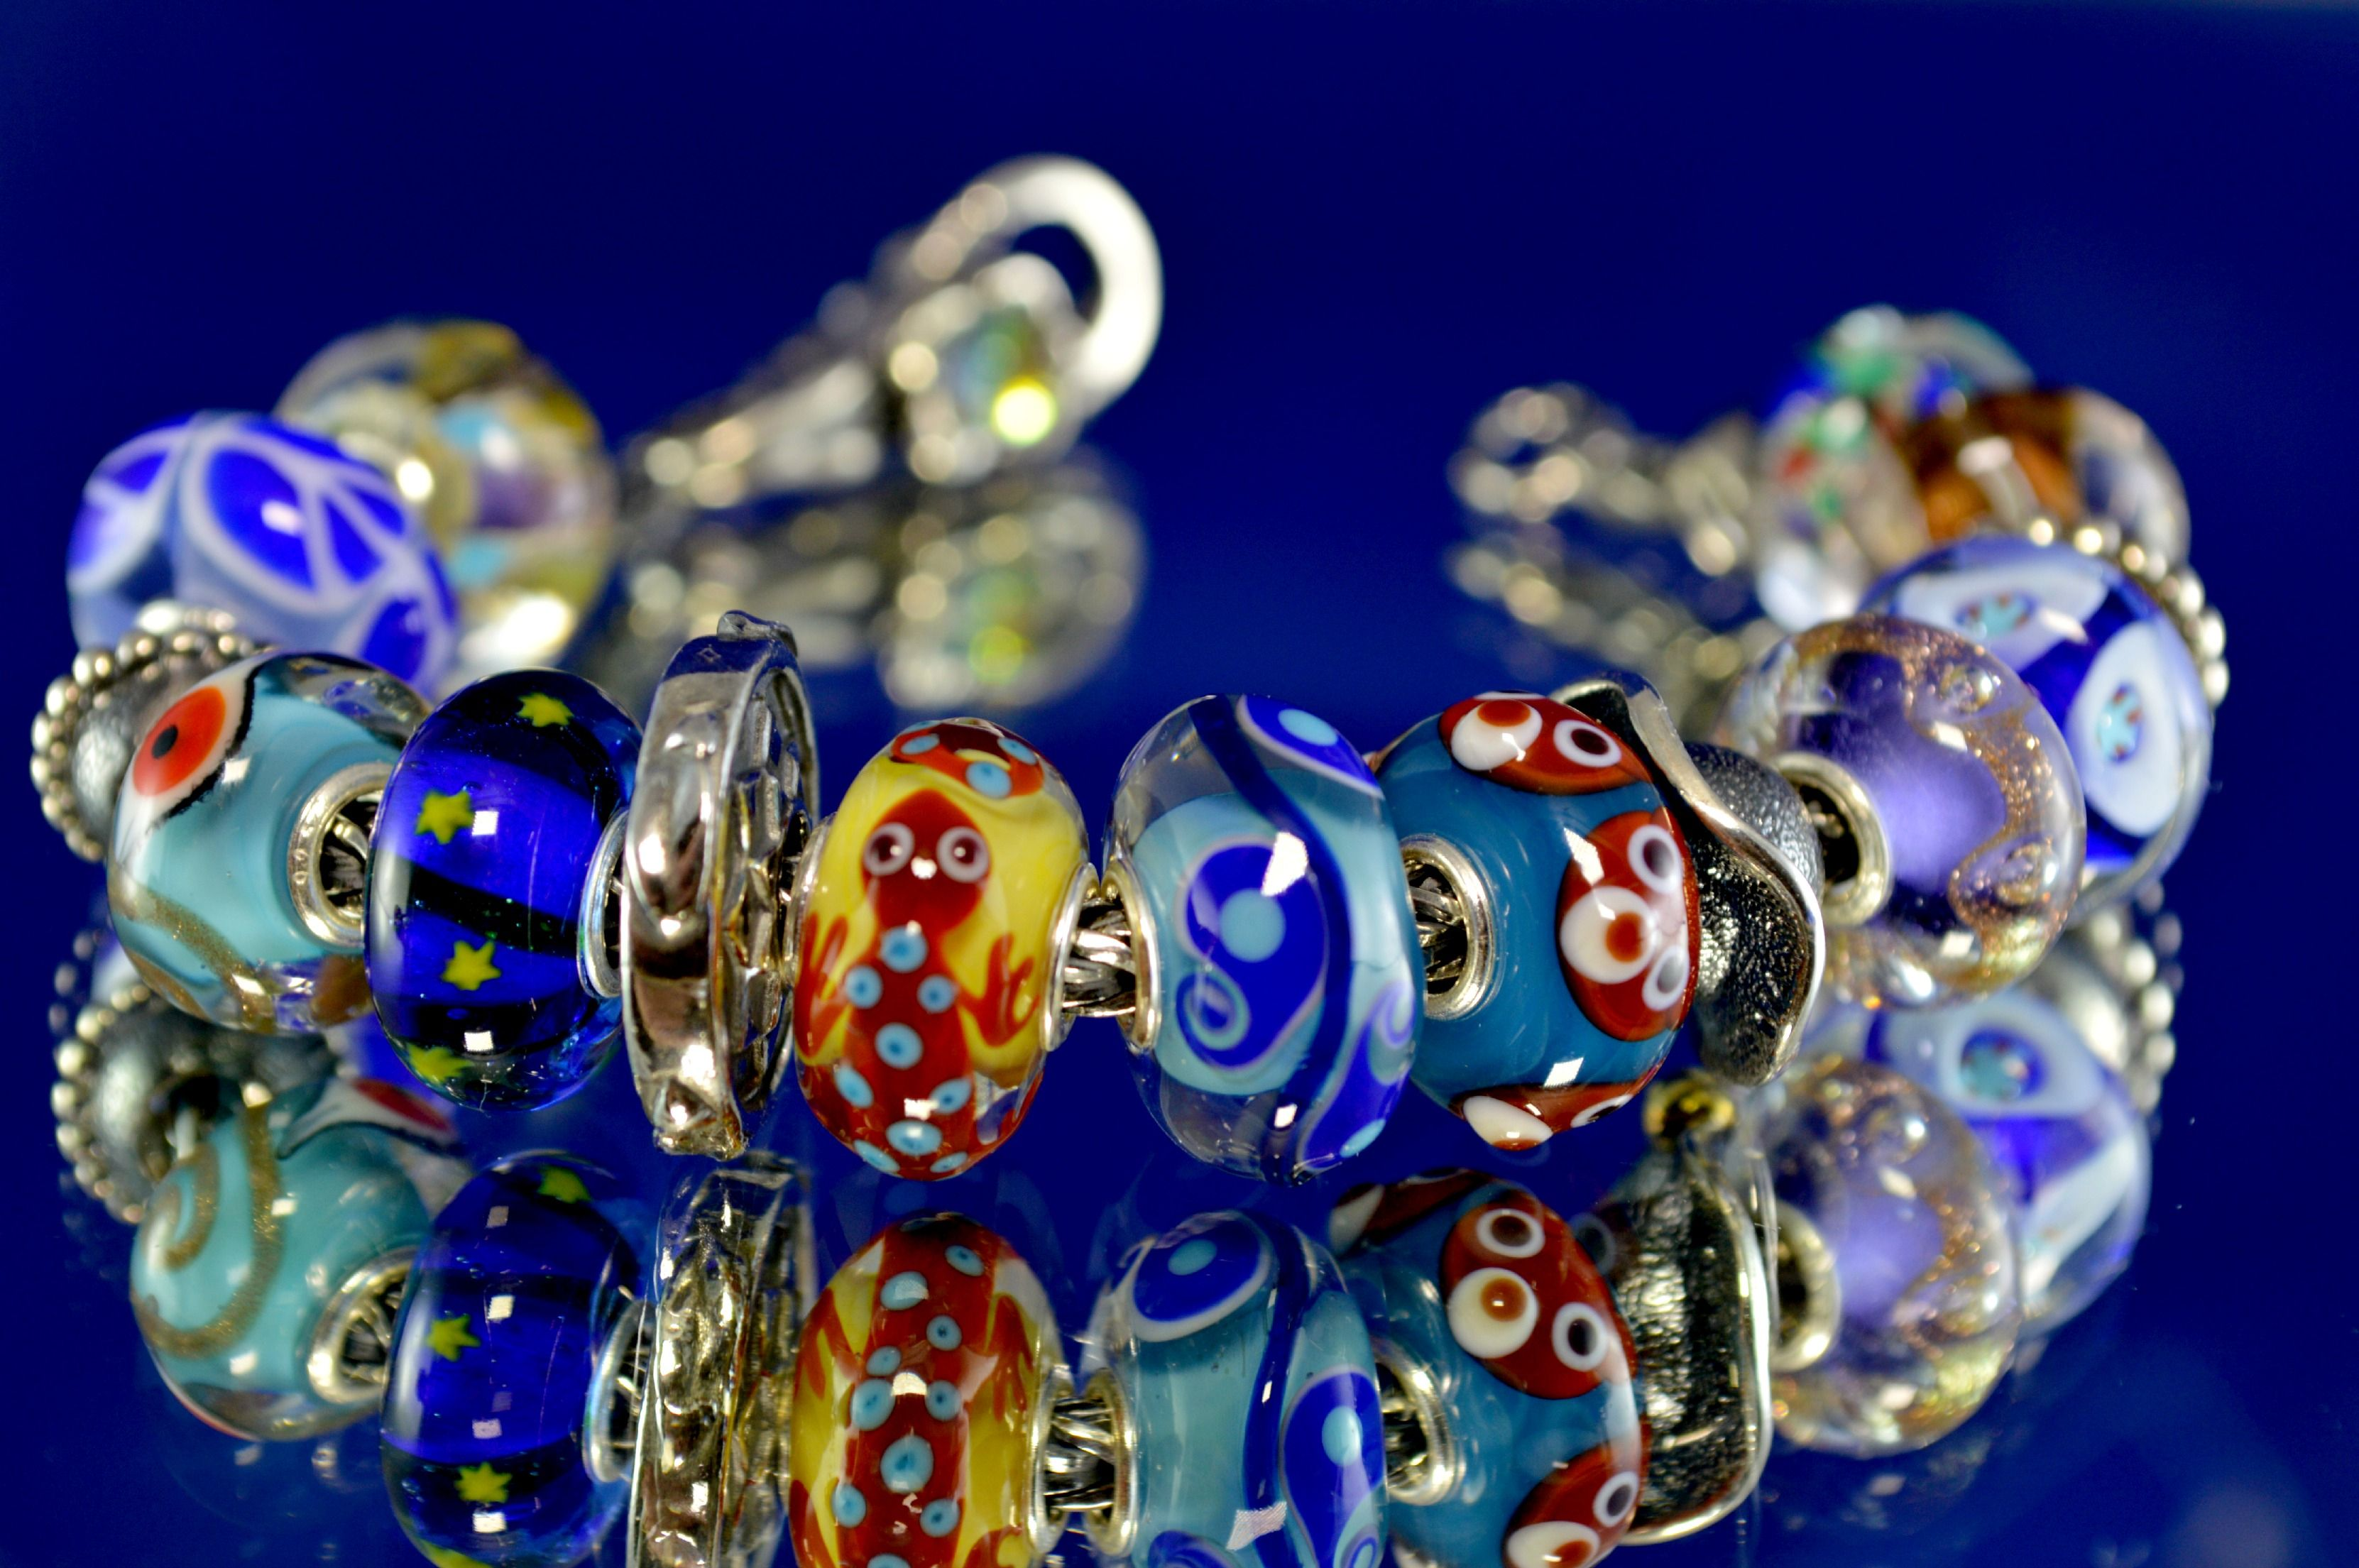 Quanti animaletti su questo bracciale! Buona giornata! How many animals on this bracelet... Have a nice day!